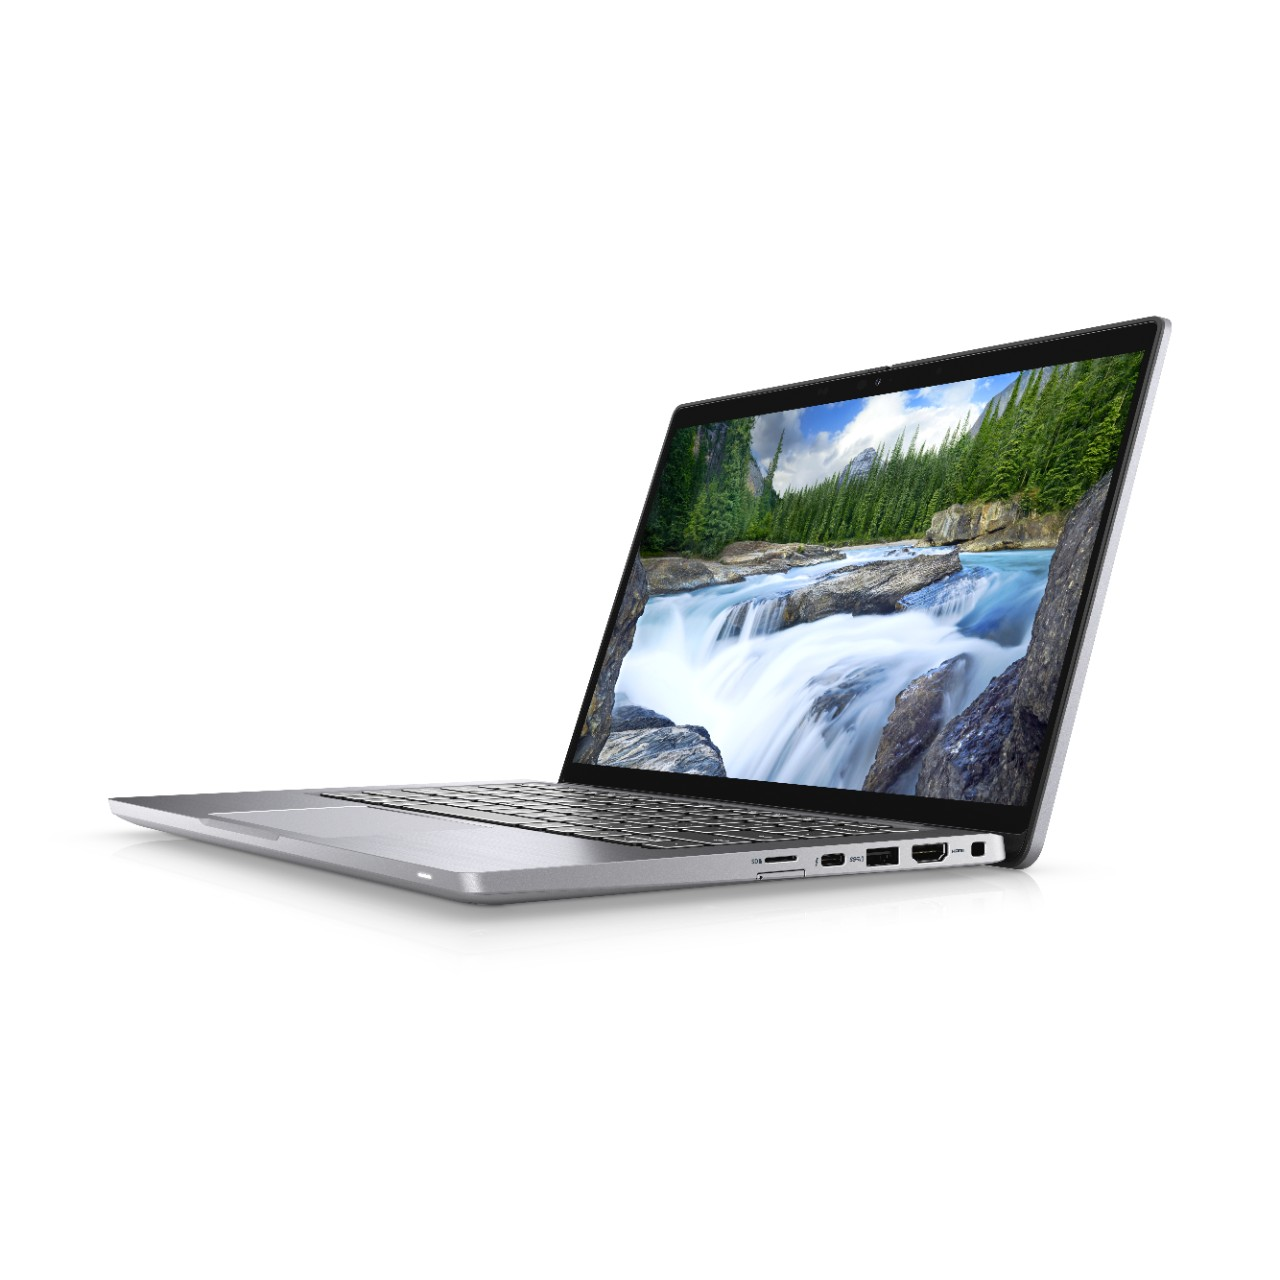 Dell announces new Latitude laptops ahead of CES | IT ...